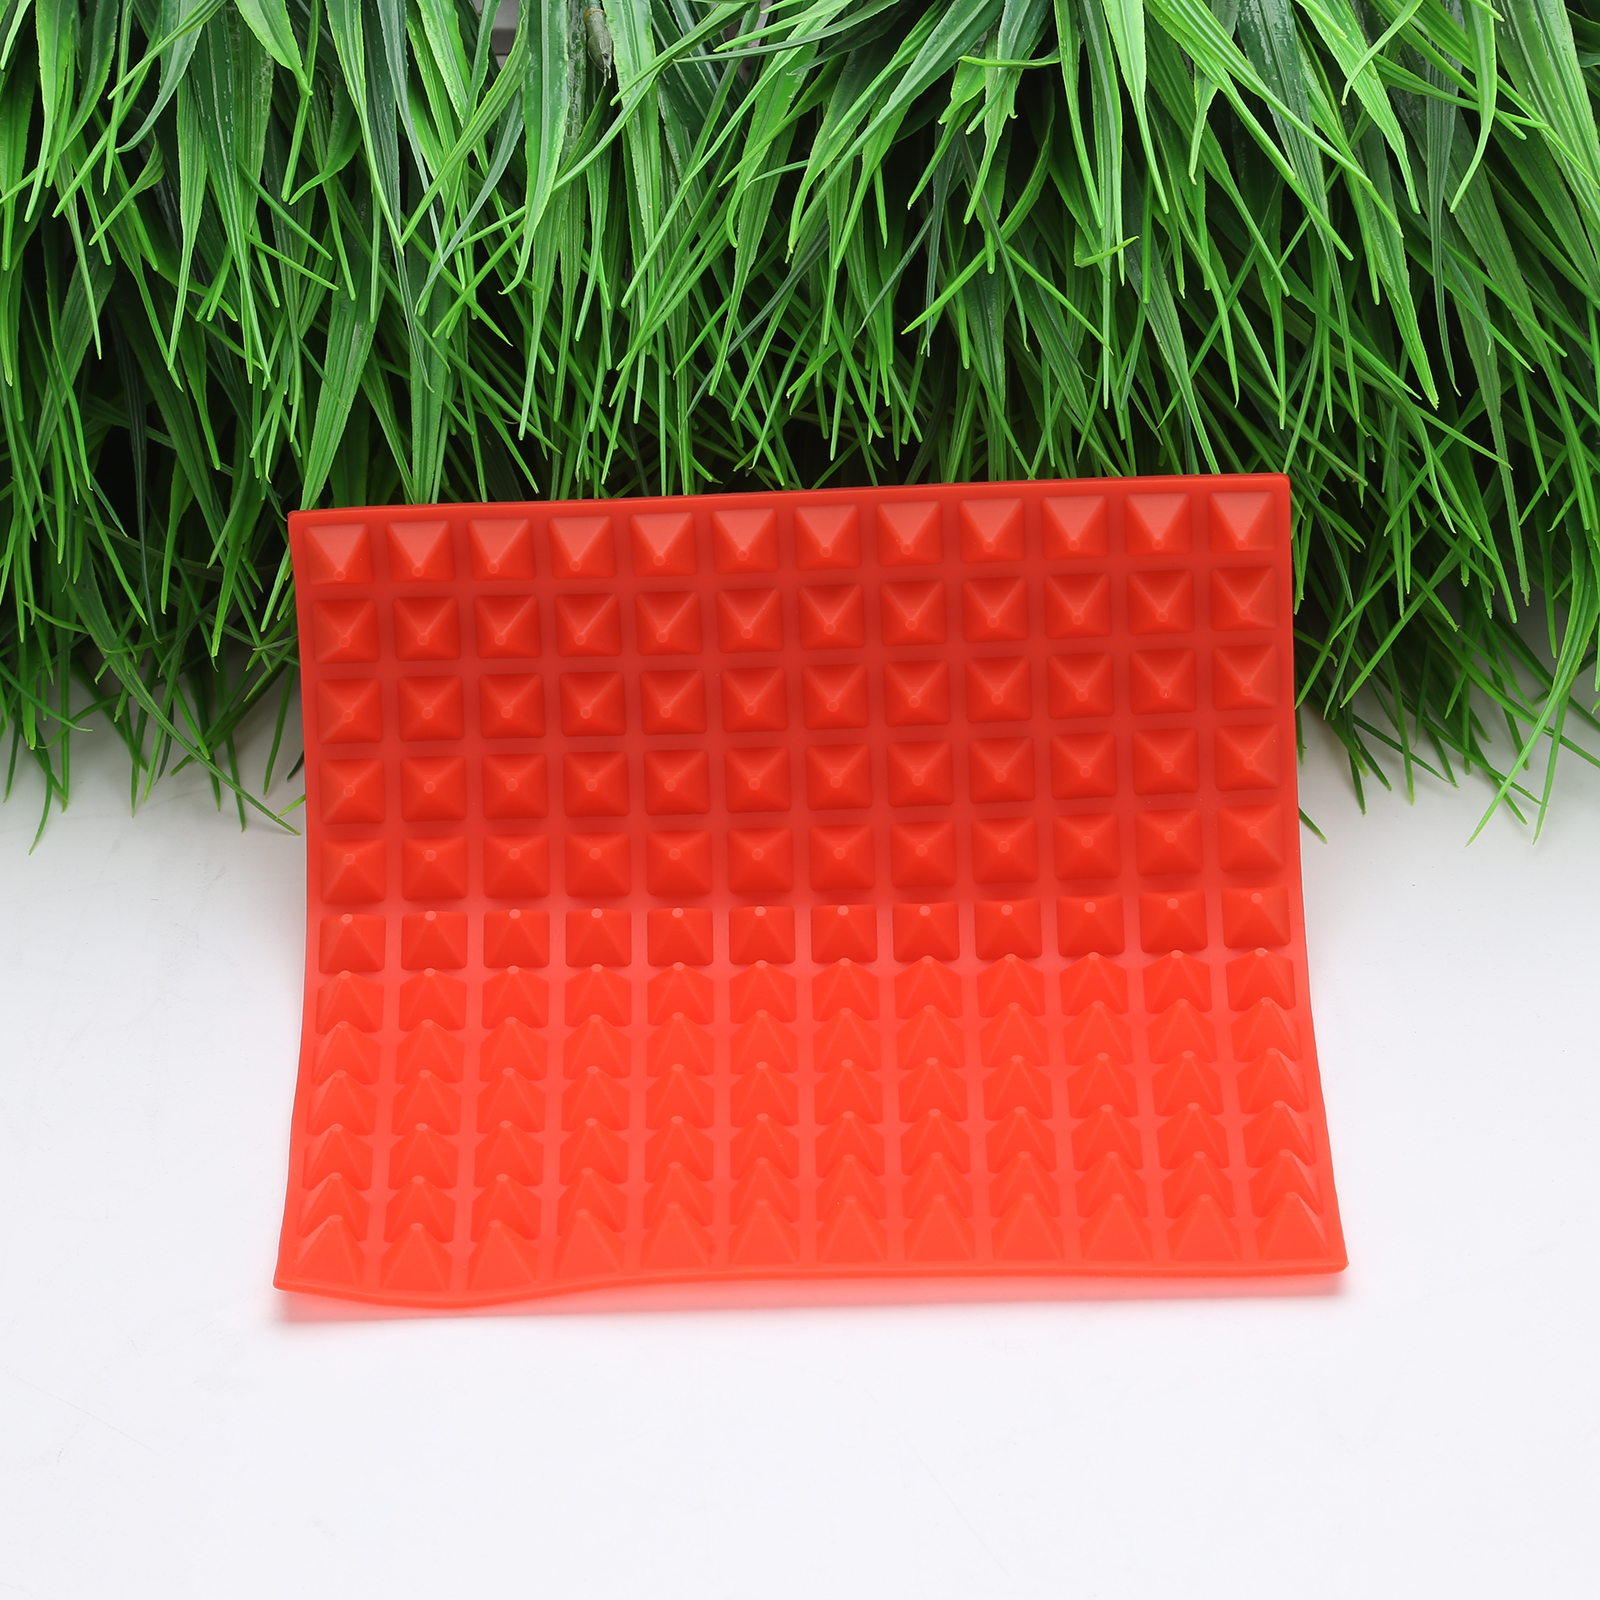 3 Colors Silicone Baking Mat In Non Toxic And High Temperature Resistance For Chocolate And Jelly Pudding 15